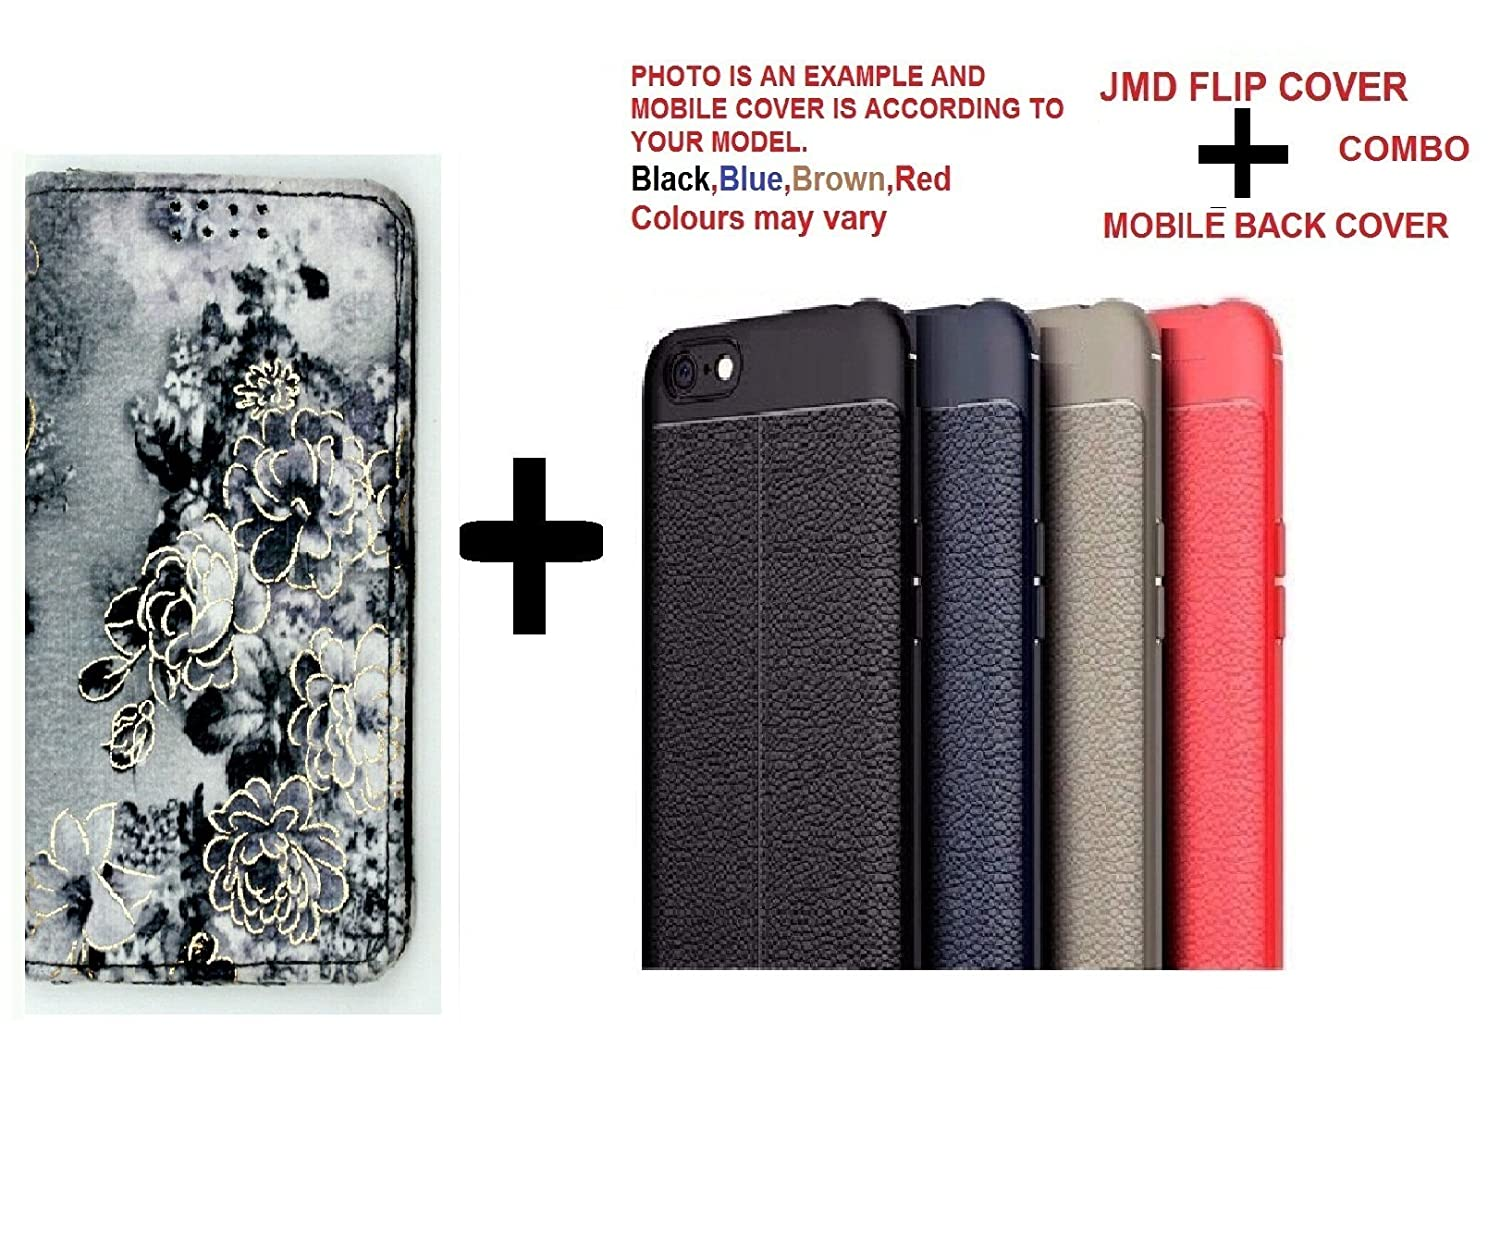 Micromax Q424 MOBILE FLIP COVER + ONE MOBILE BACK CASE COVER (COMBO) BY JMD